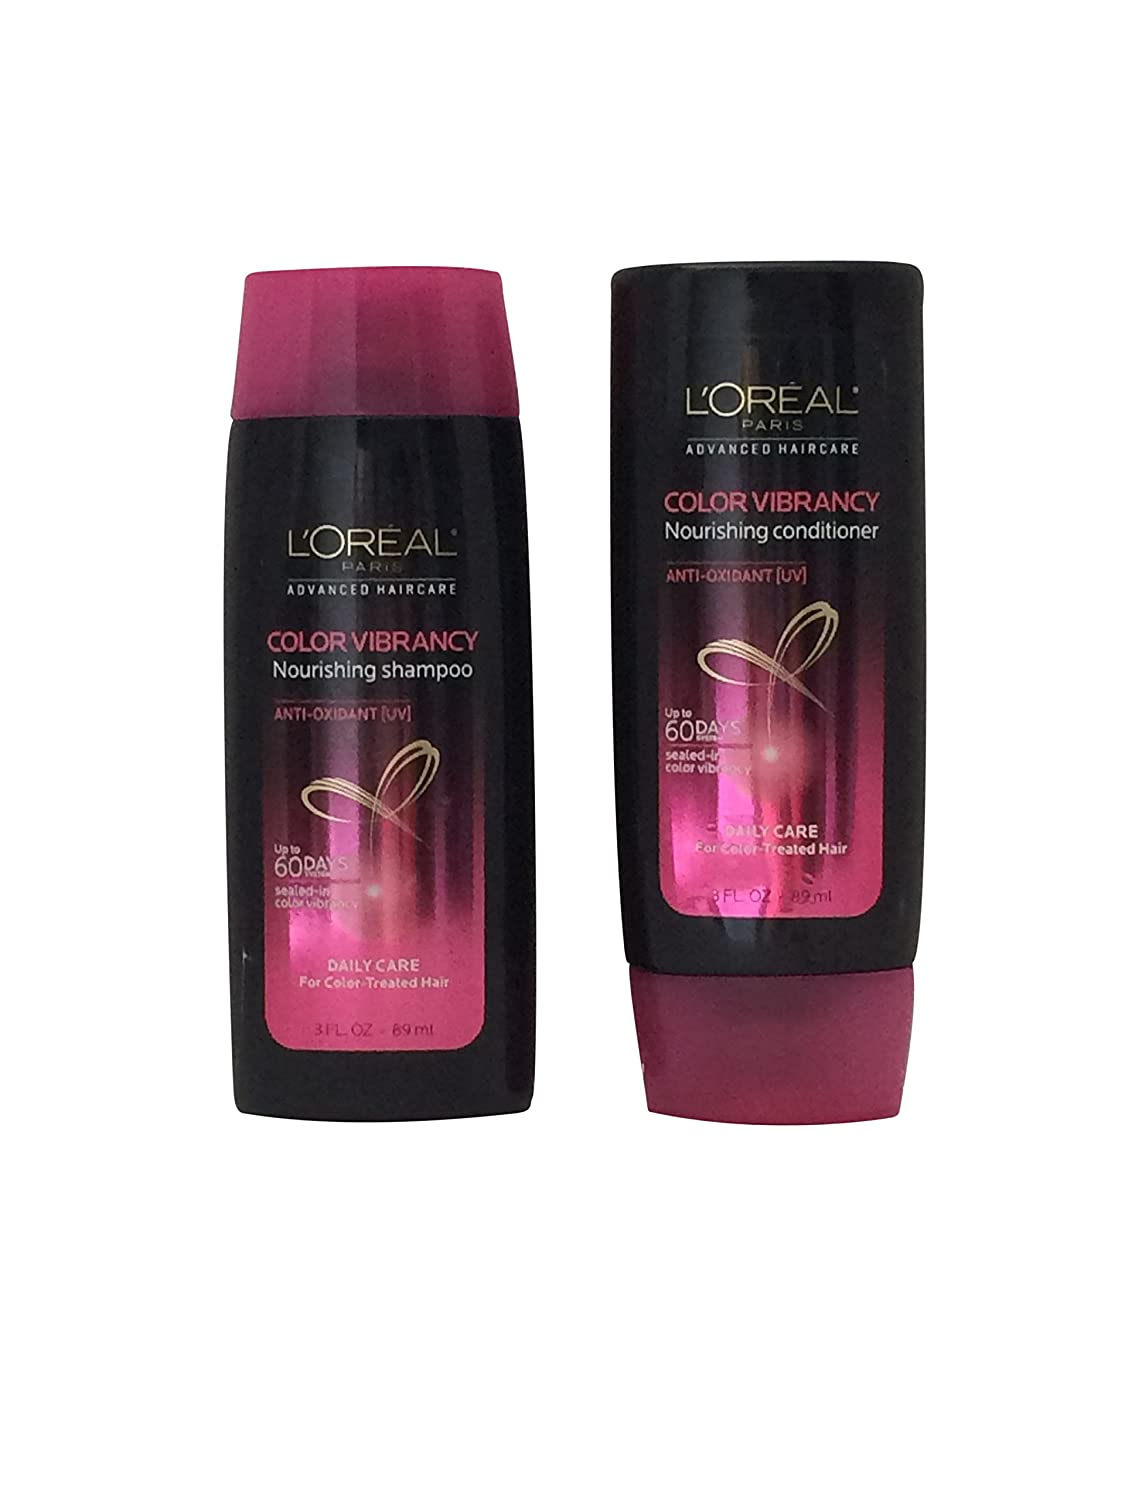 Loreal Paris Color Vibrancy Nourishing Shampoo & Conditioner Daily Care for Color-Treated Hair 3 oz Travel Size